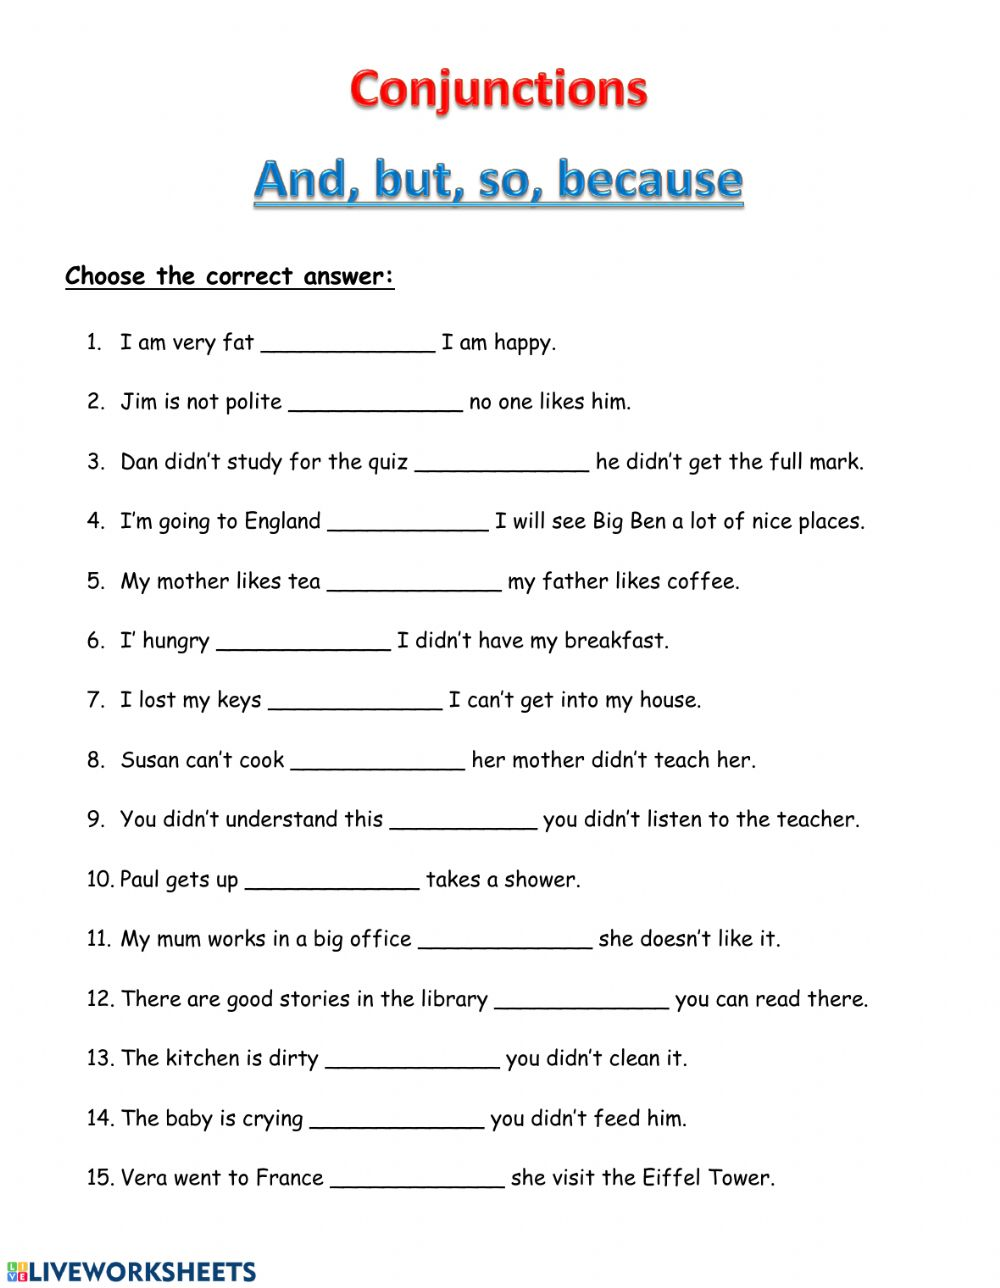 Conjunctions And But So Because Worksheet